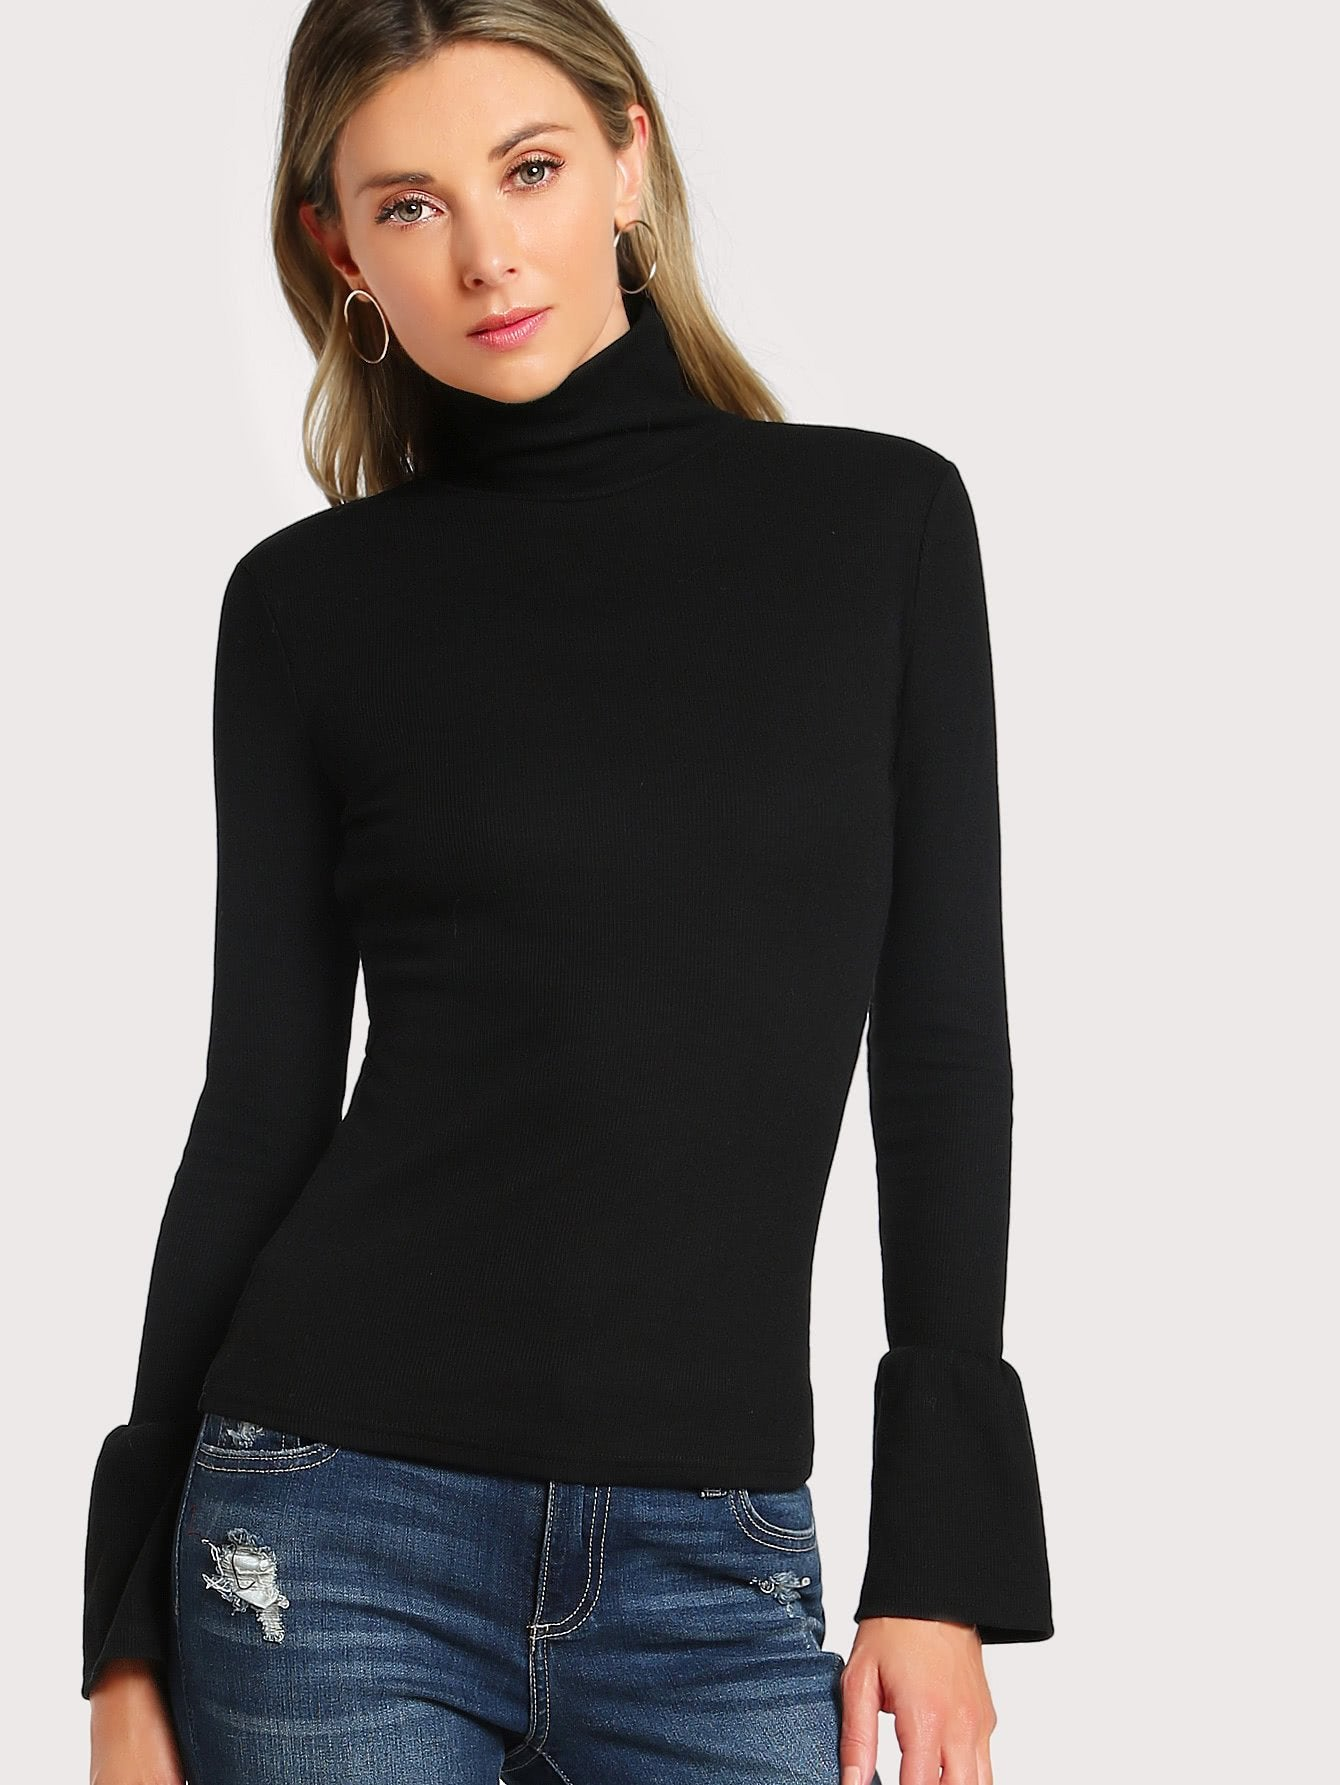 Bell sleeve turtle neck top (1462526246955)